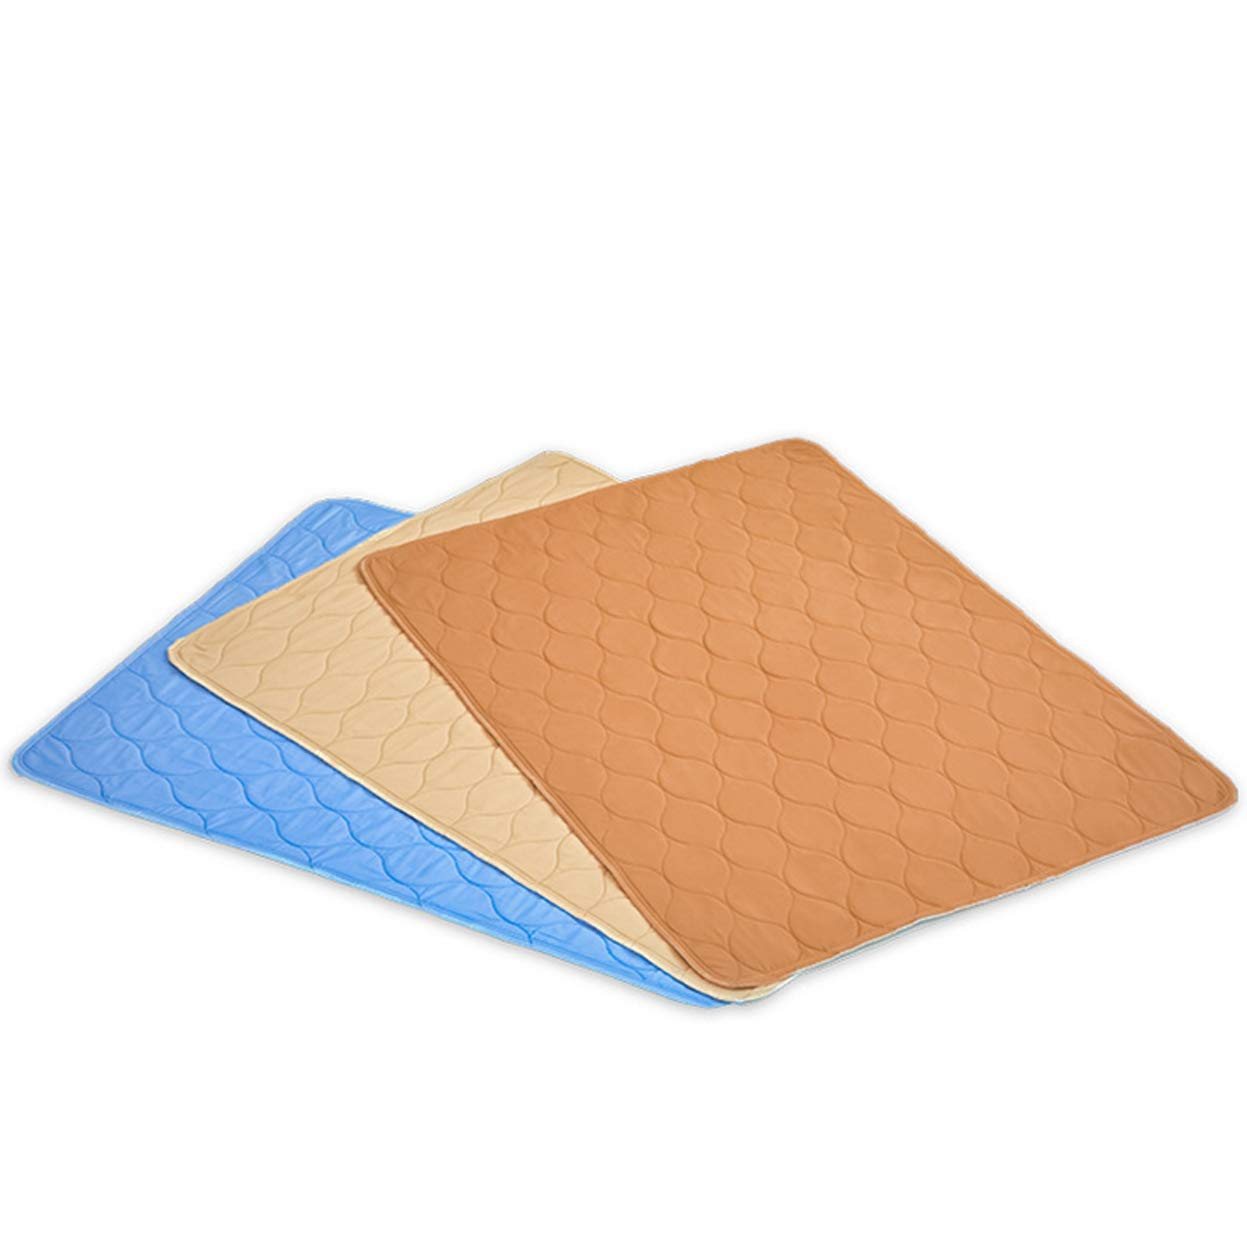 Ggsrtesxs Adult Absorbent Premium Quality Bed Pad Polyester Cotton Four Layers Thick Anti-Slip Sheets Quilted Waterproof Reusable Washable,Light Brown,80x120cm by Ggsrtesxs